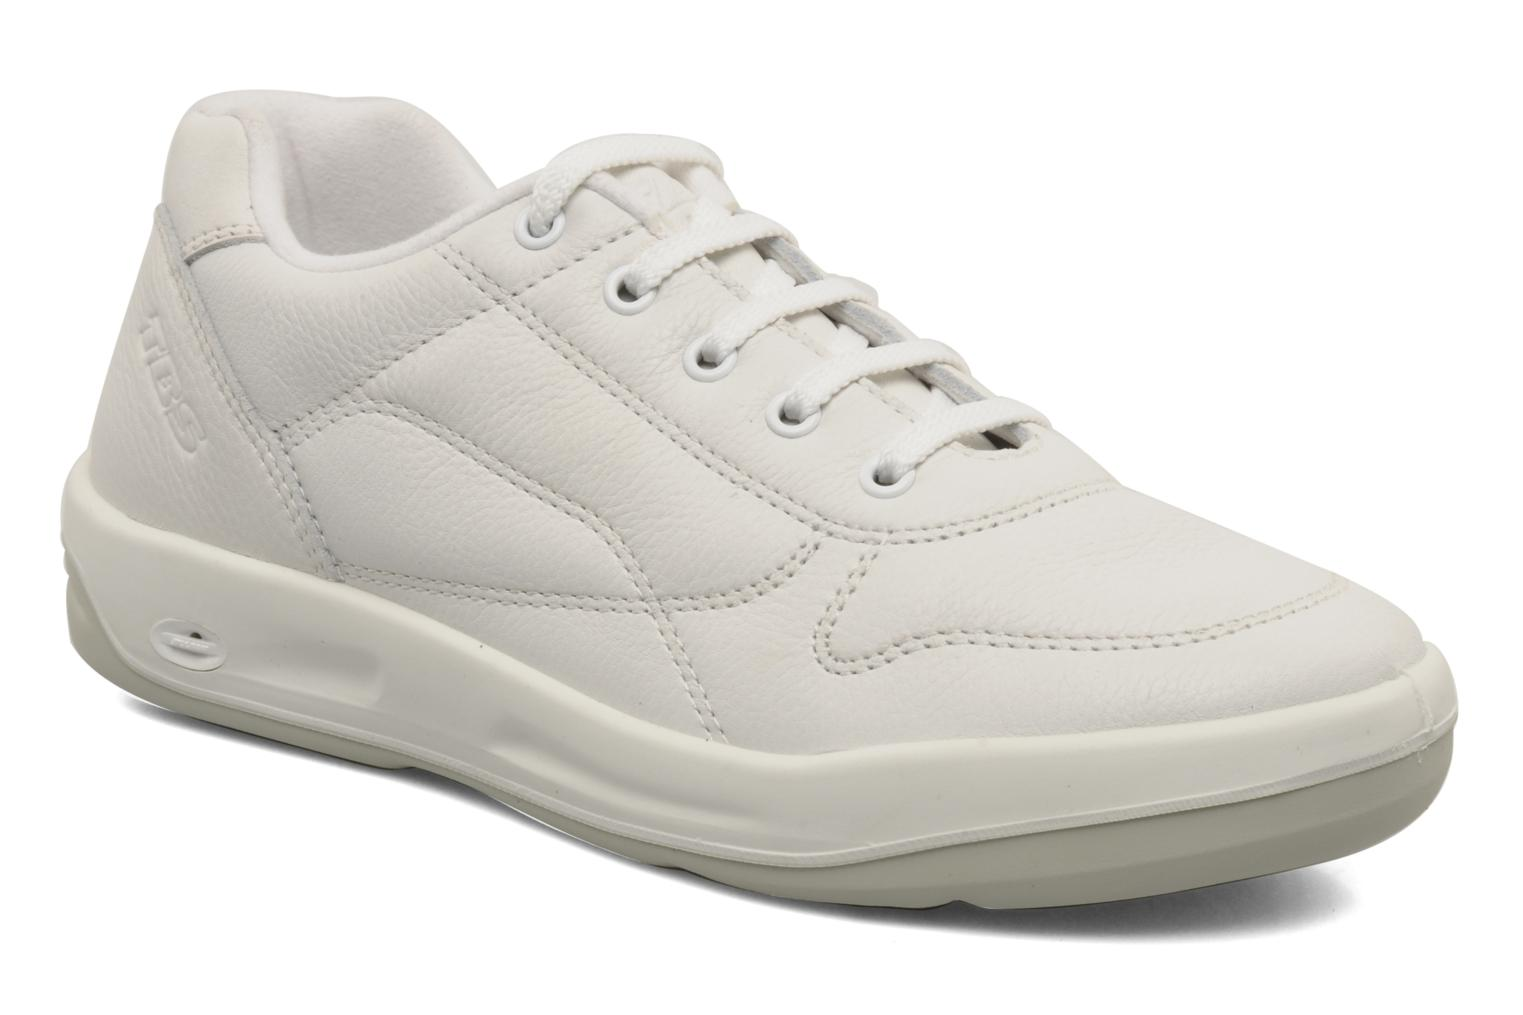 Marques Chaussure homme TBS Easy Walk homme Albana Blanc